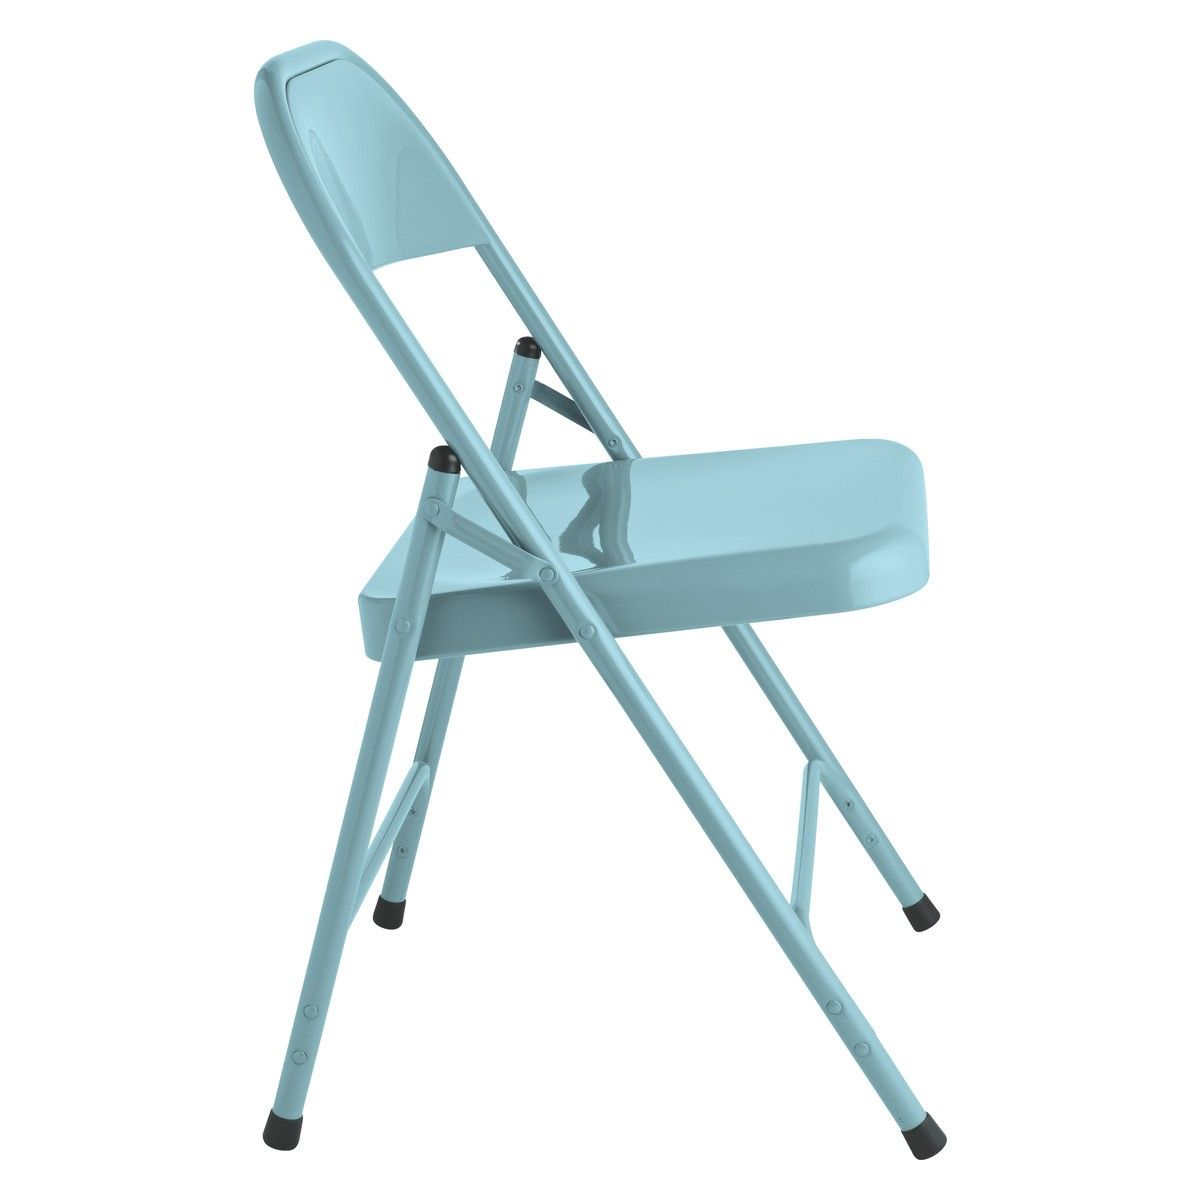 Terrific Macadam Blue Metal Folding Chair Sitting Room Metal Caraccident5 Cool Chair Designs And Ideas Caraccident5Info